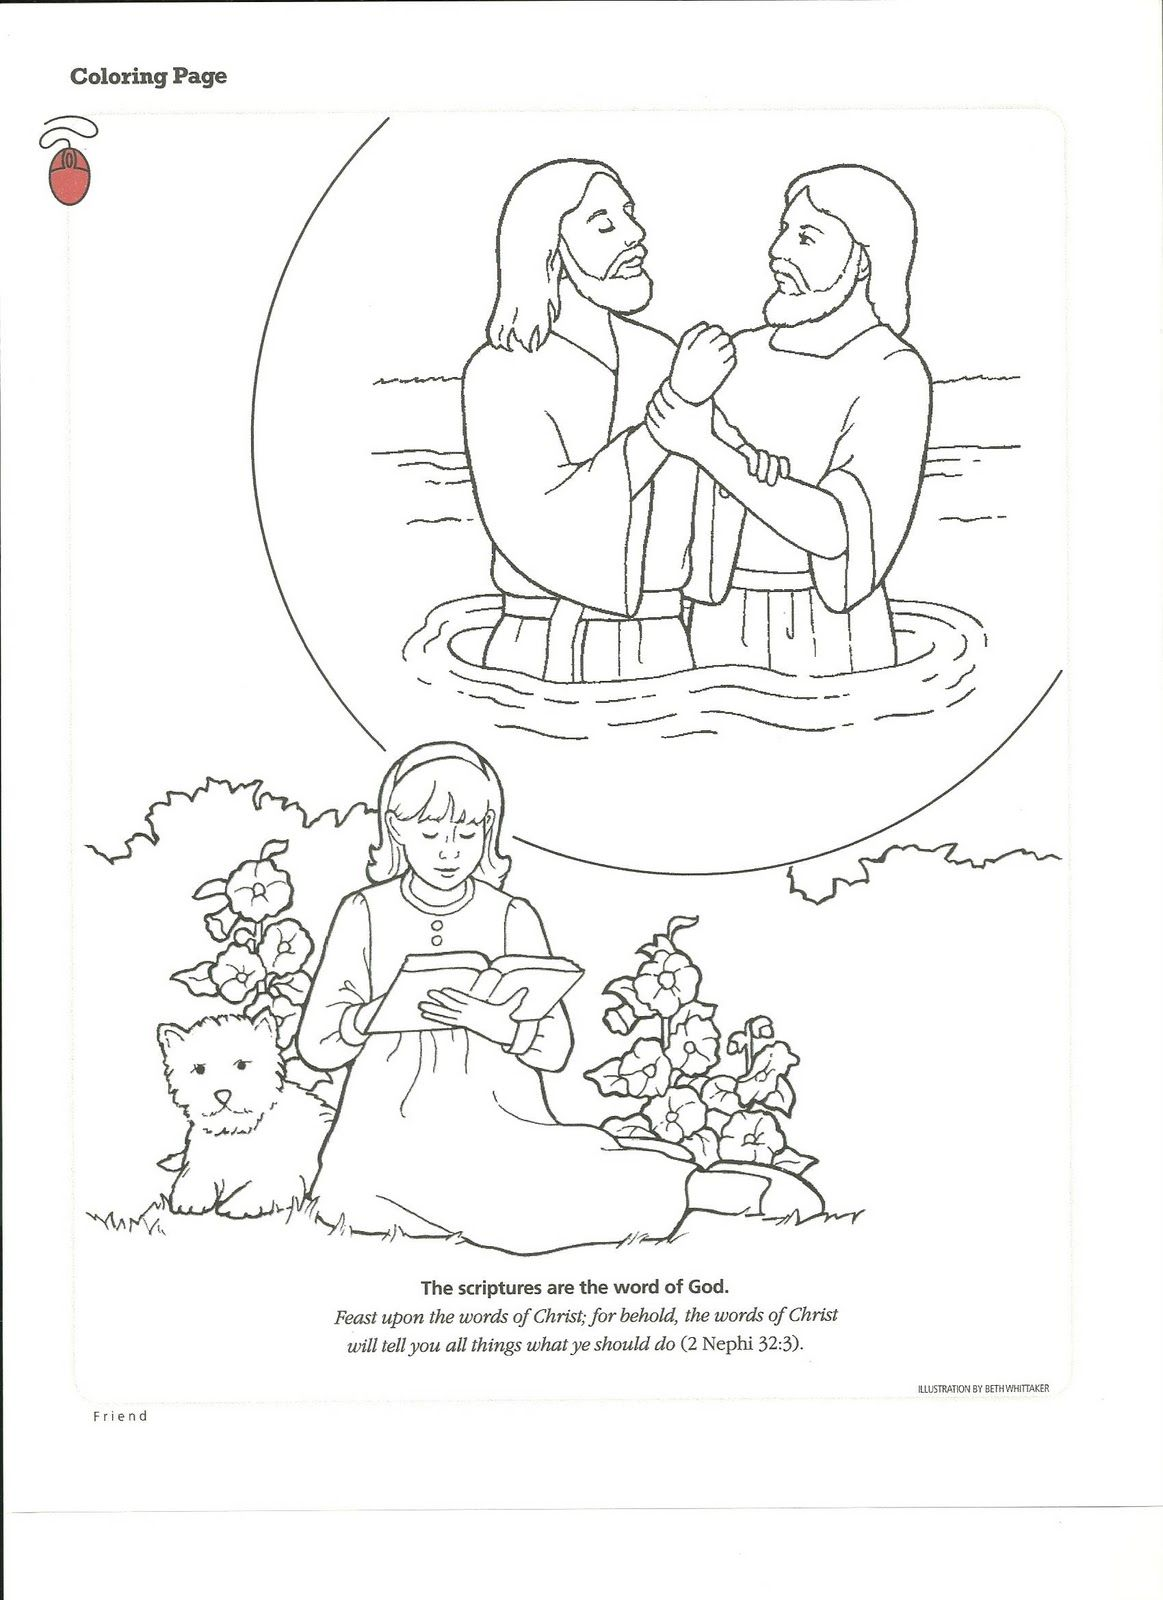 Primary 5 manual Lesson 34 Joseph Smith Teaches about